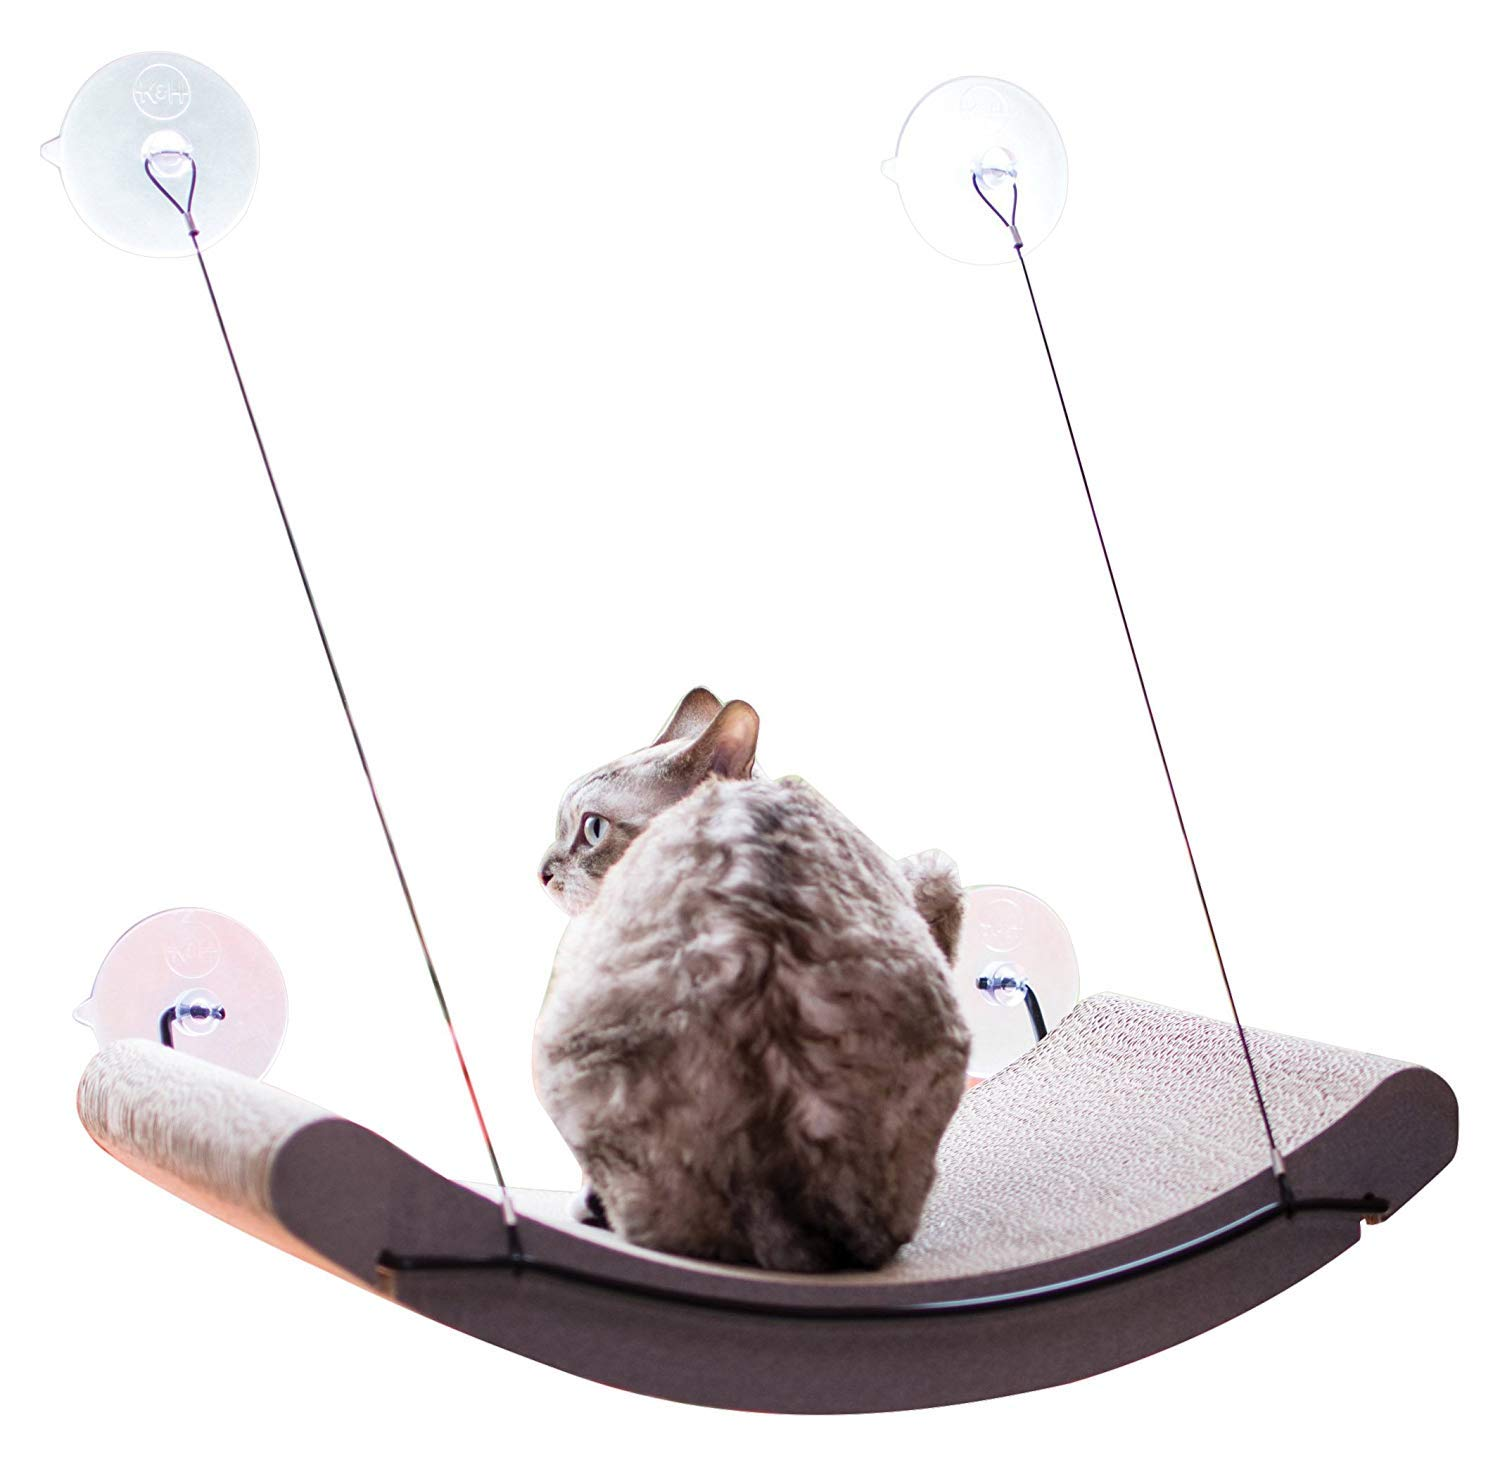 K&H Pet Products EZ Mount Scratcher Kitty Sill Cradle, Tan product image